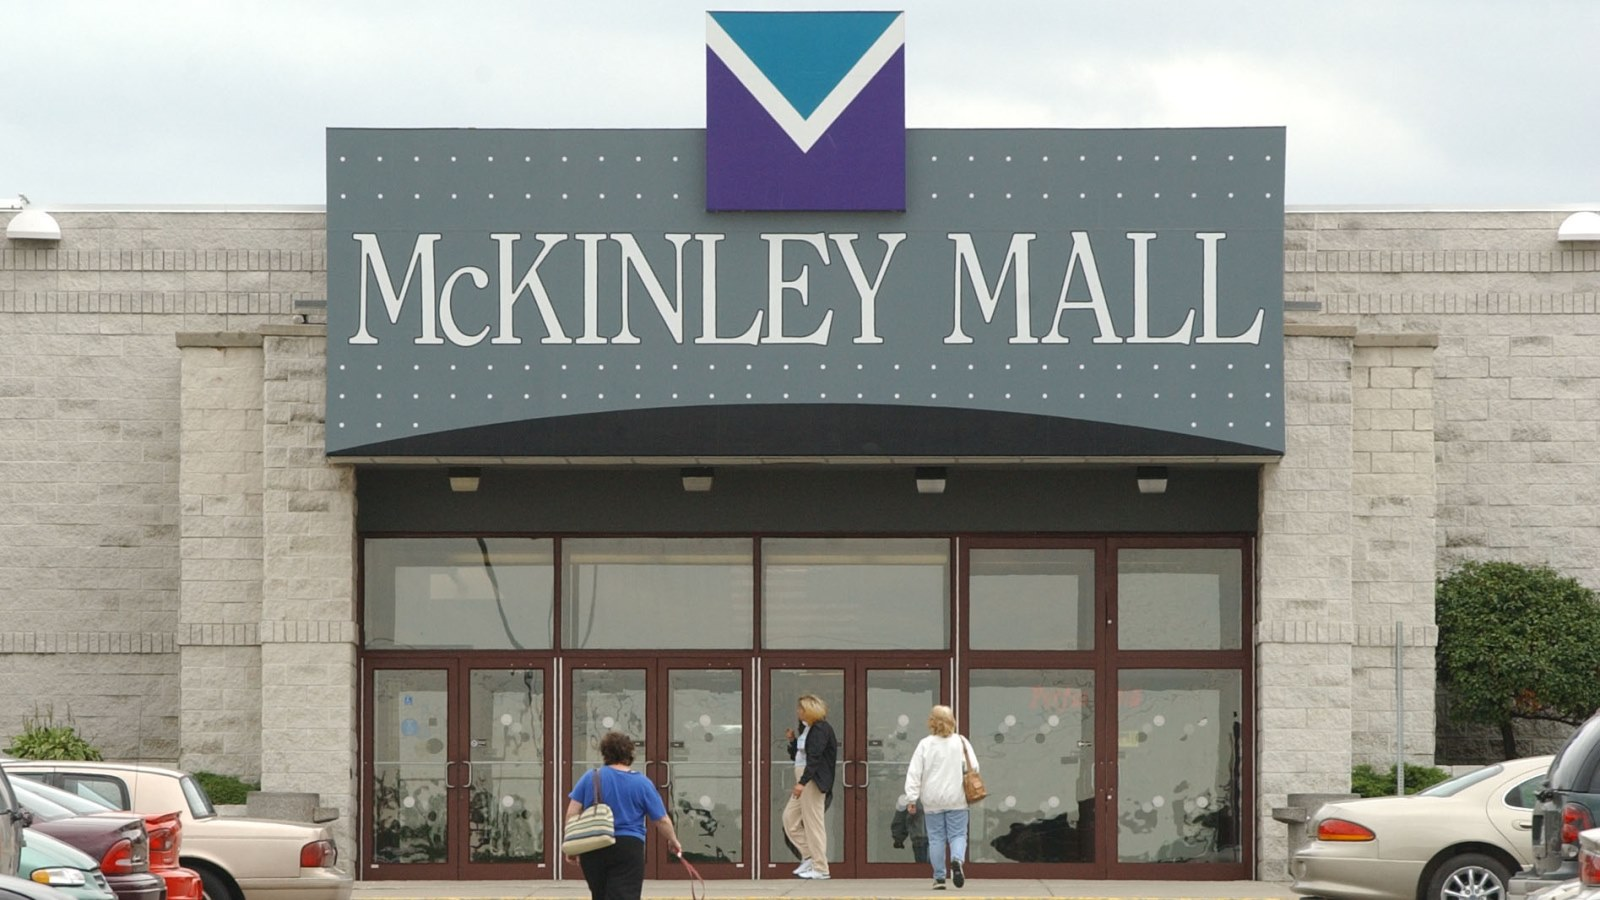 The McKinley Mall, pictured here in 2003, remains a Southtowns hub years after its construction. (Sharon Cantillon/Buffalo News)